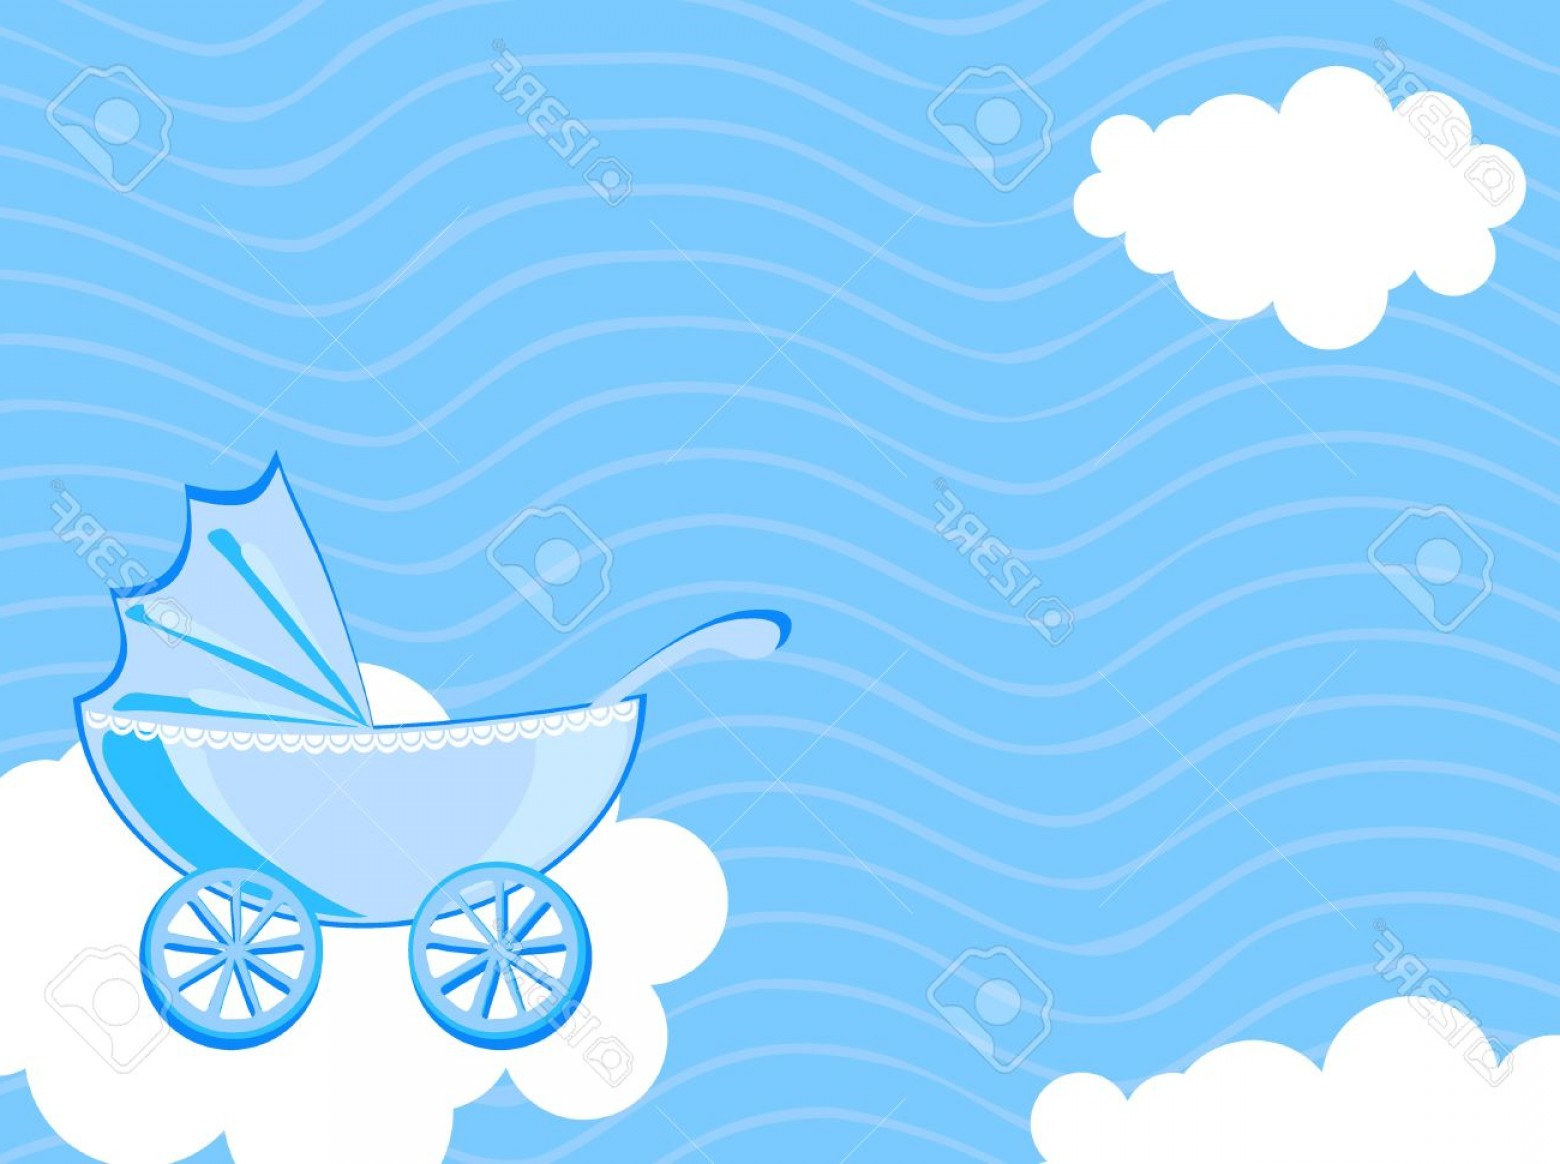 Clouds Backgrounds Vector: Photovector Illustration Of Baby Carriage On The Background Of Cloudy Sky